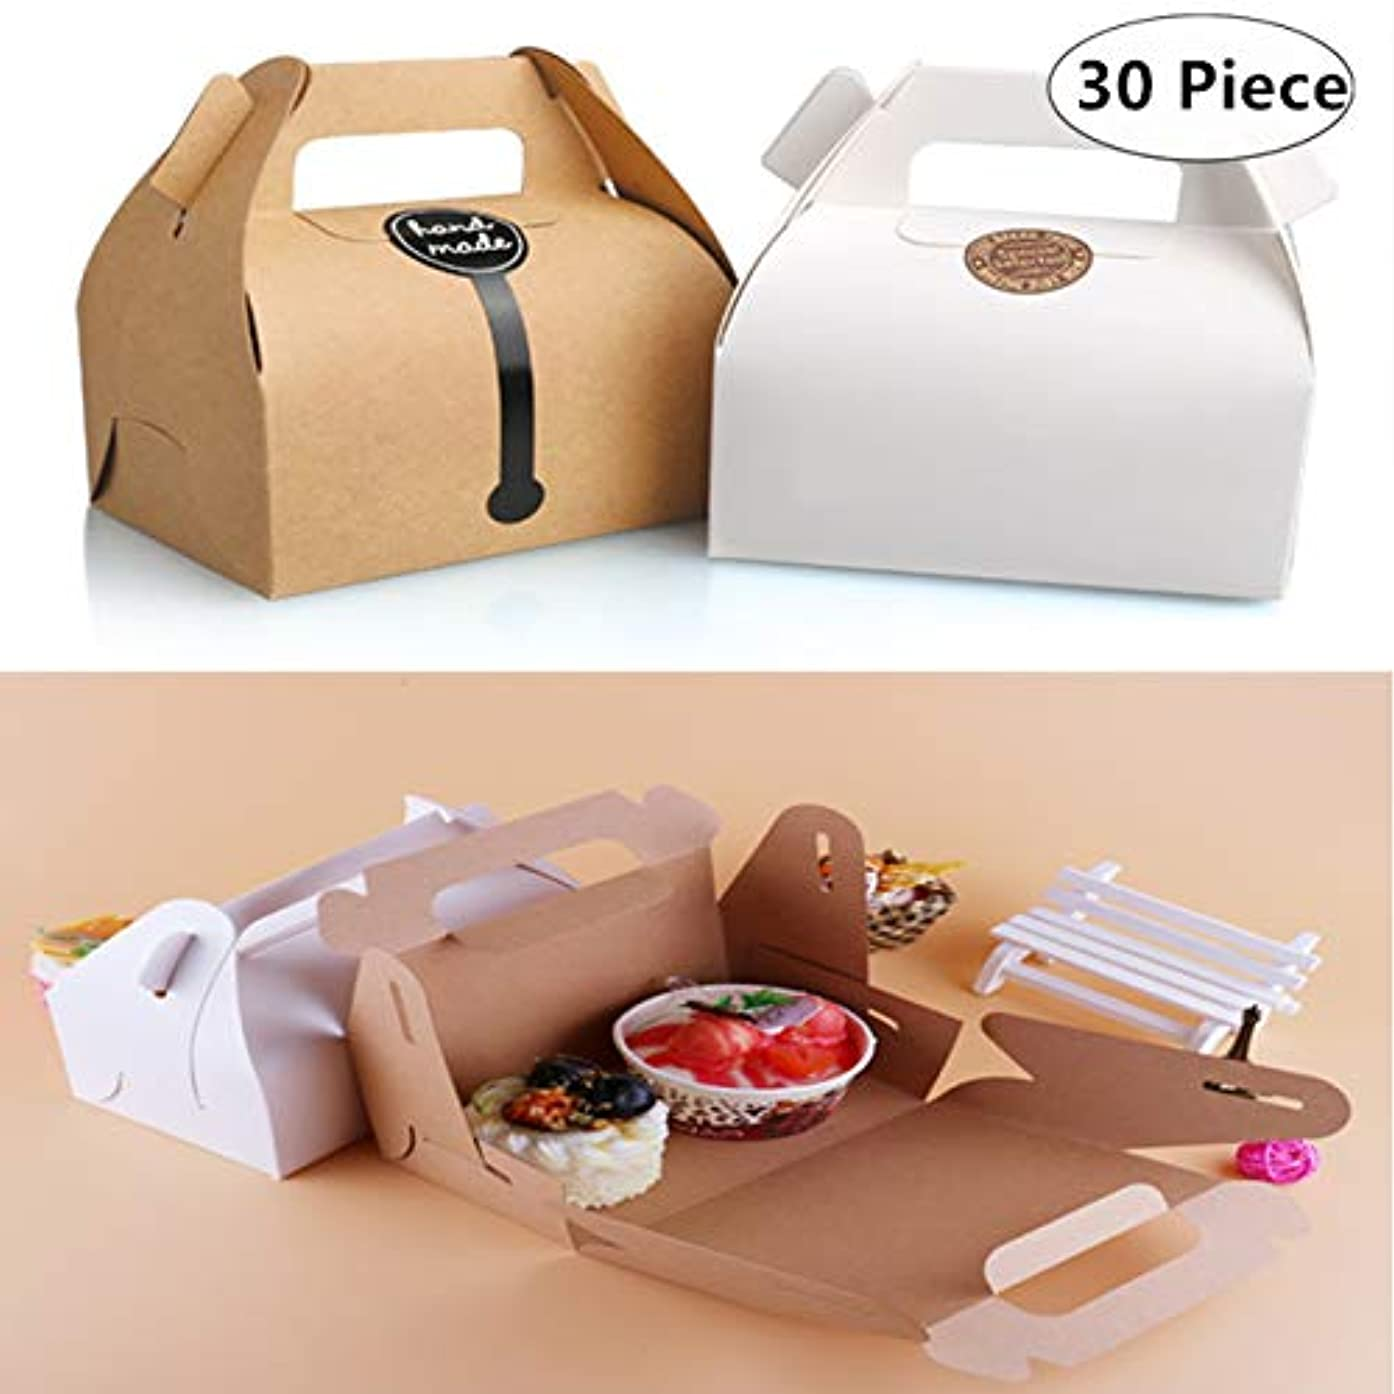 Carnatory 30pcs Party Favor Paper Treat Boxes with Handles, Cardboard Favor Boxes Treat Goody Bags Paper Gift Box Cookies Goodies Bakery Cupcake Boxes for Arts & Crafts, Picnic Snacks, Birthday Party